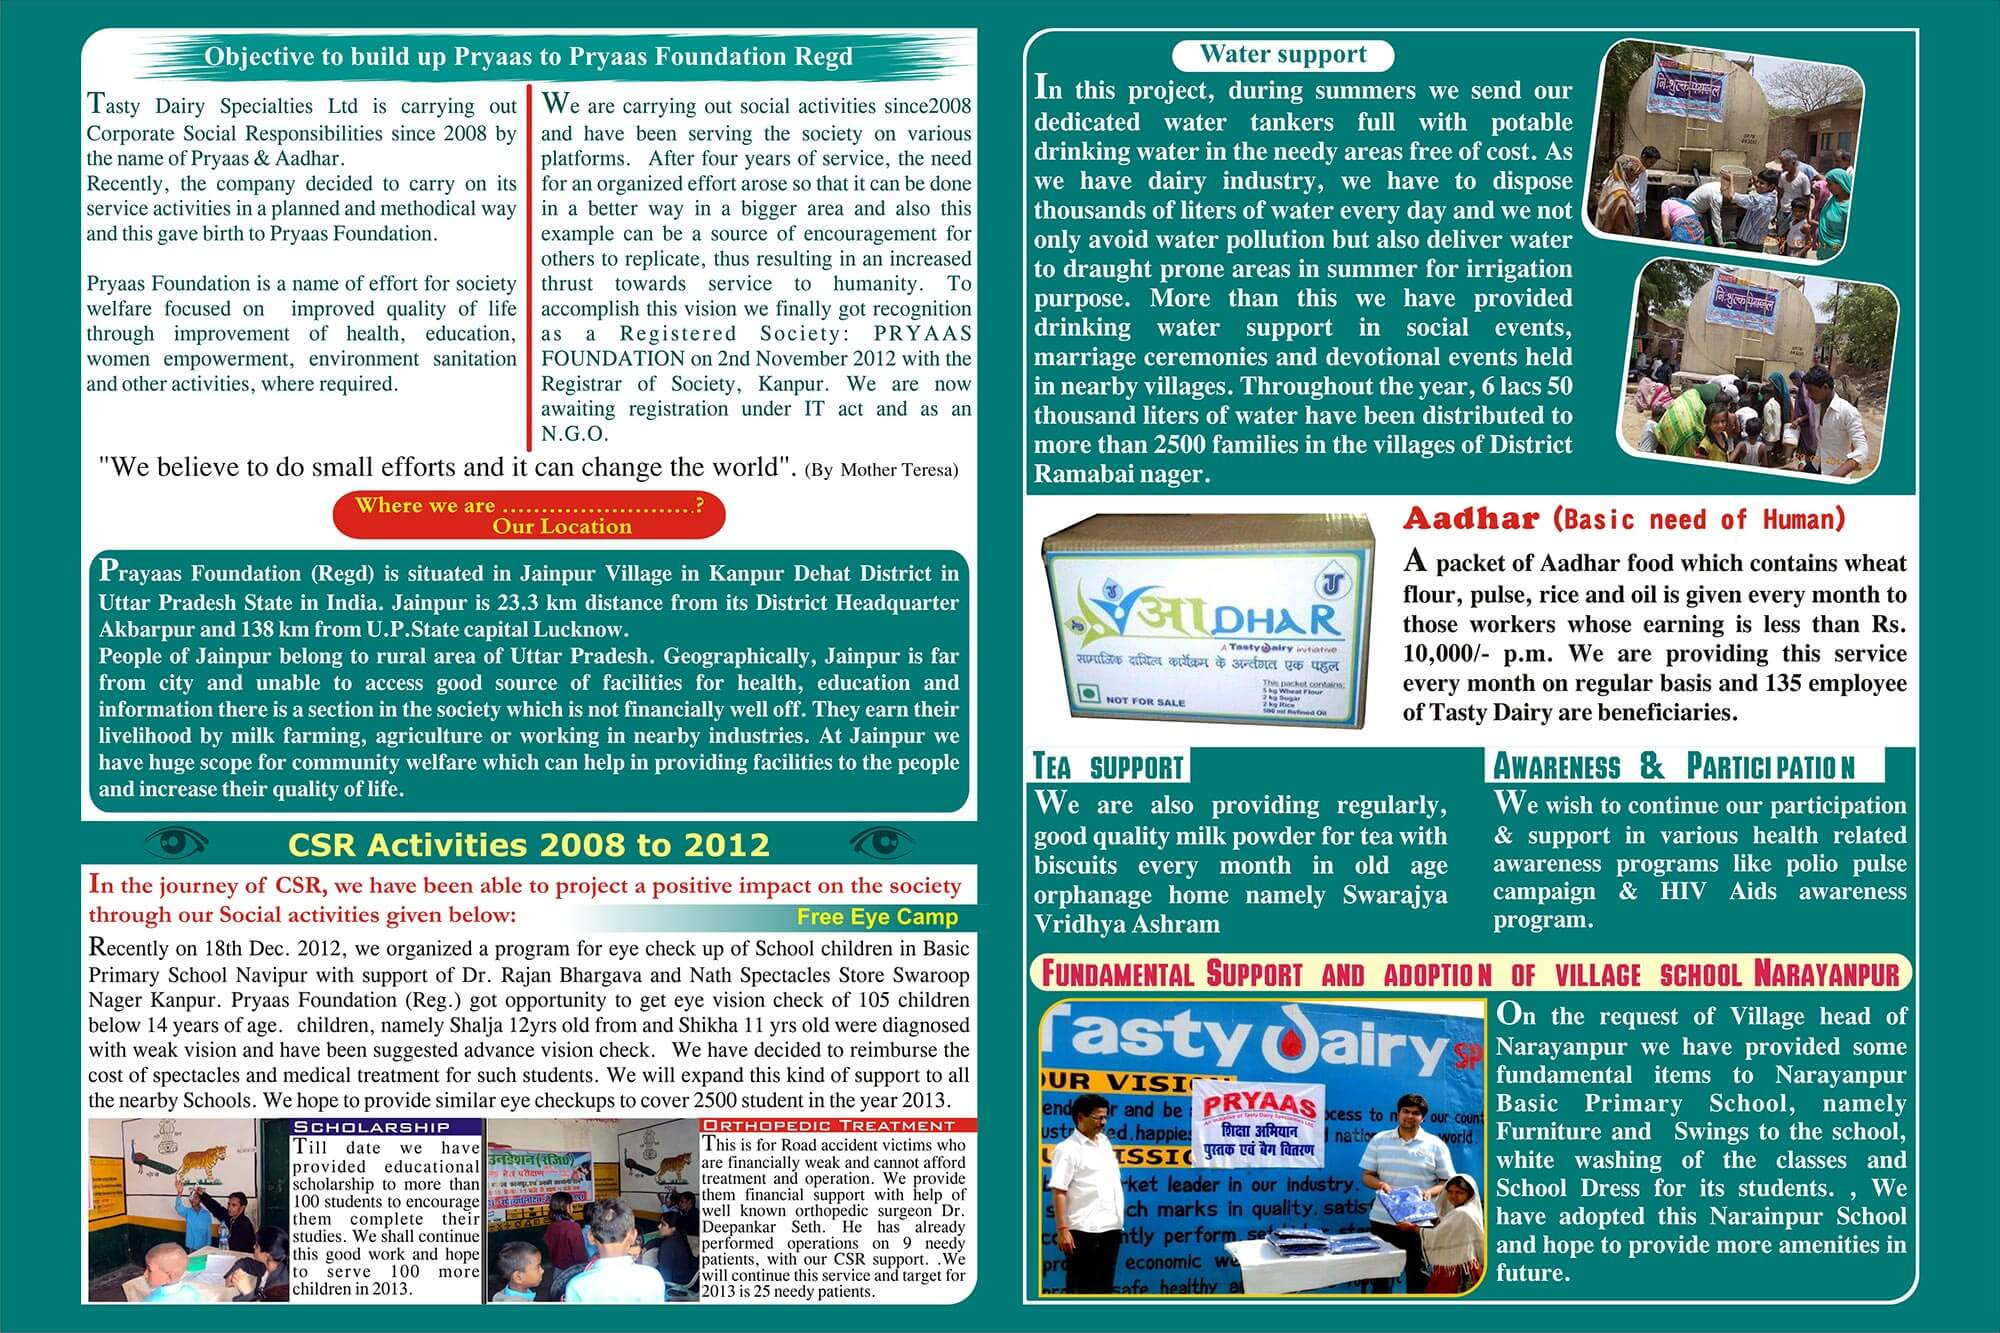 CSR Neswletter 2013 - Back Part